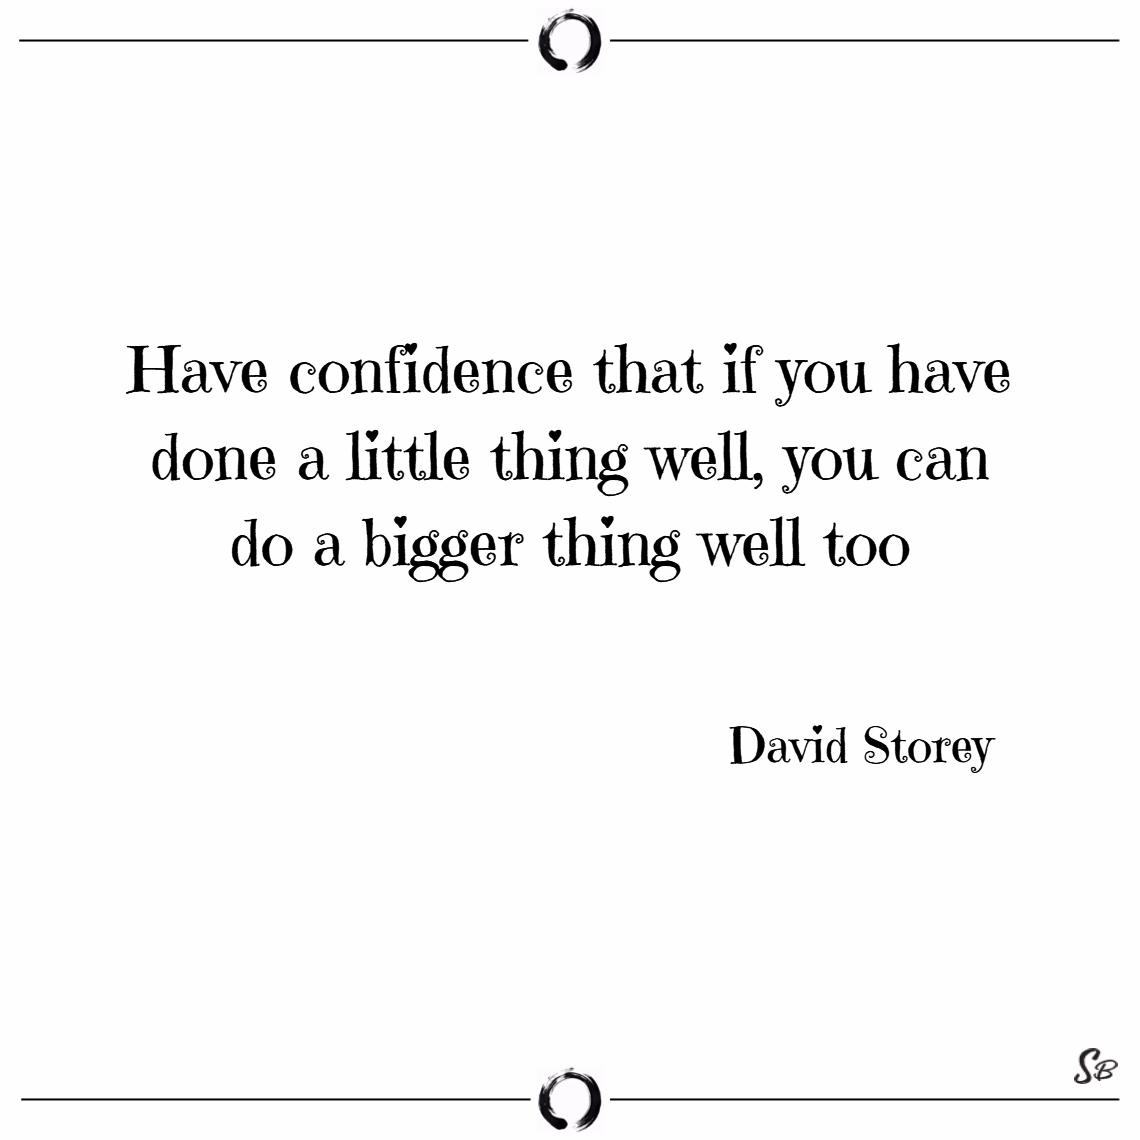 Have confidence that if you have done a little thing well, you can do a bigger thing well too. – david storey